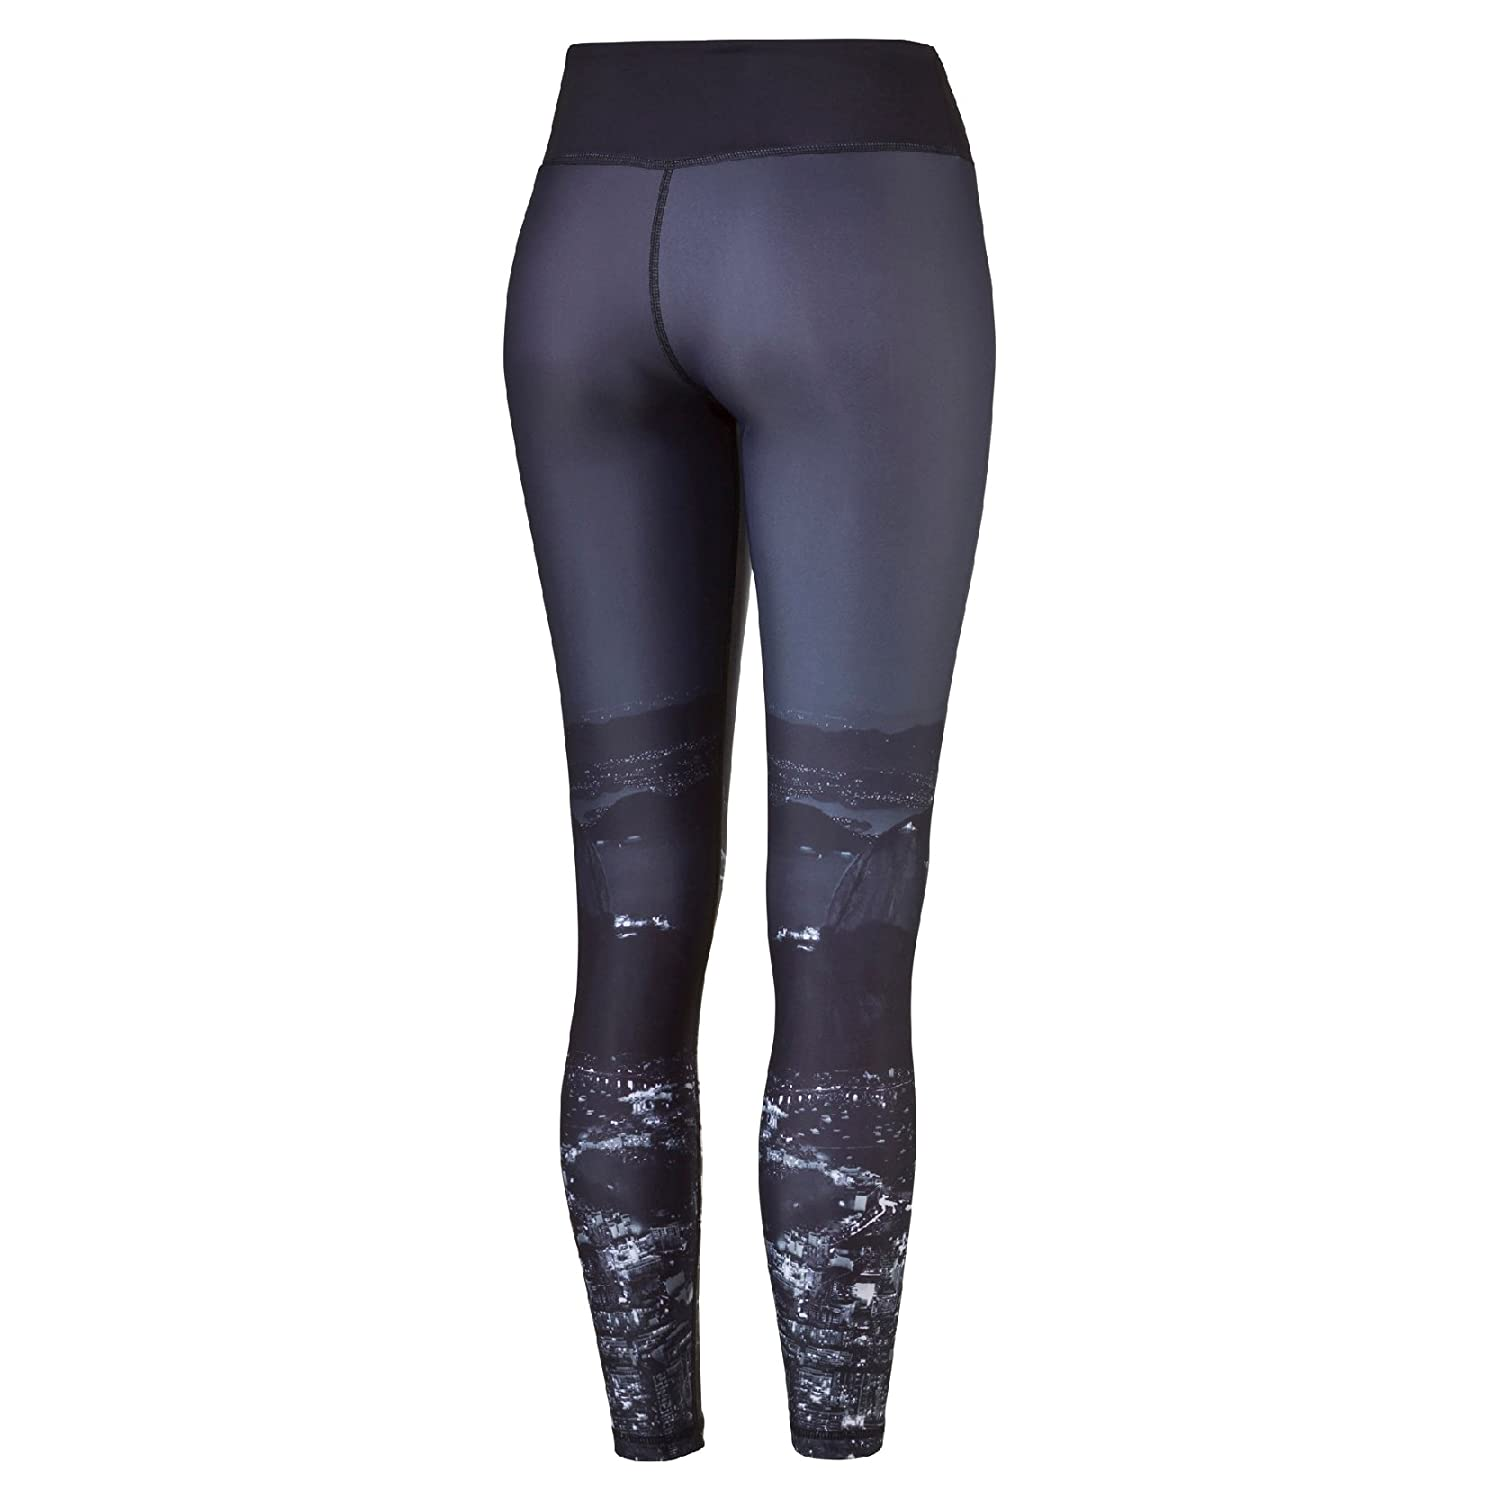 fea5143db29925 Puma Women's Shatter Tights Trousers, Womens, Trousers, Hose Shatter Tights:  Amazon.co.uk: Sports & Outdoors